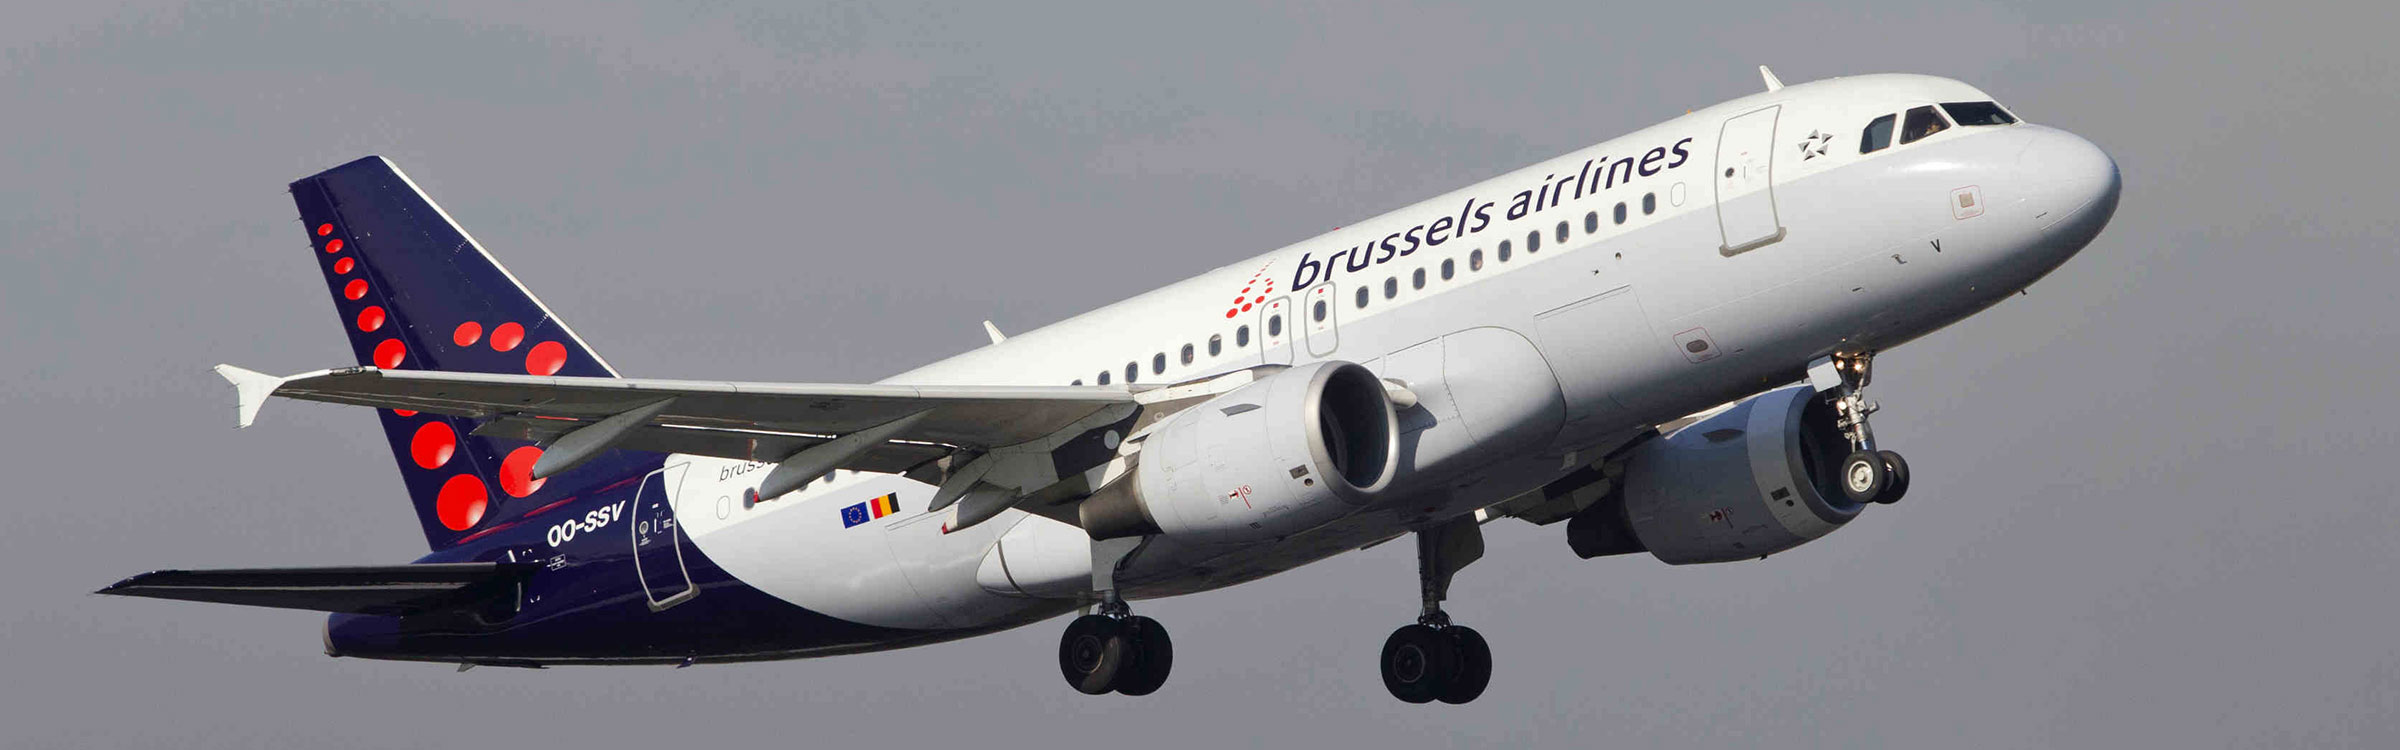 Brussels airlines2